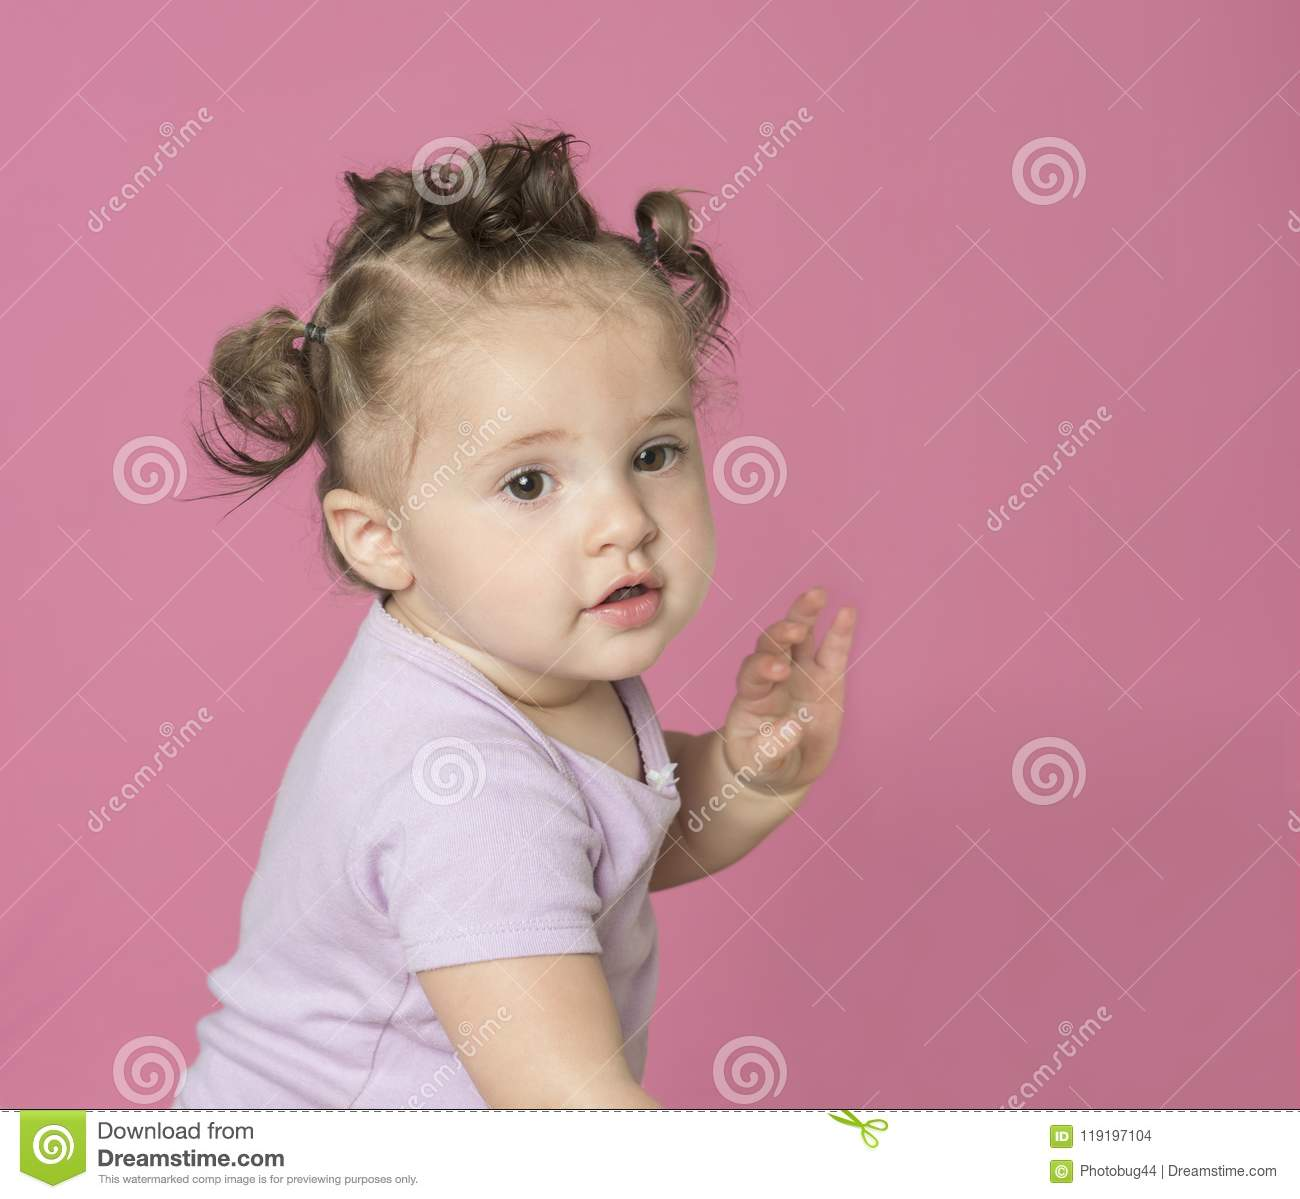 6e2b8f8c7 Mixed Race Baby Girl On Pink Stock Photo - Image of expression ...